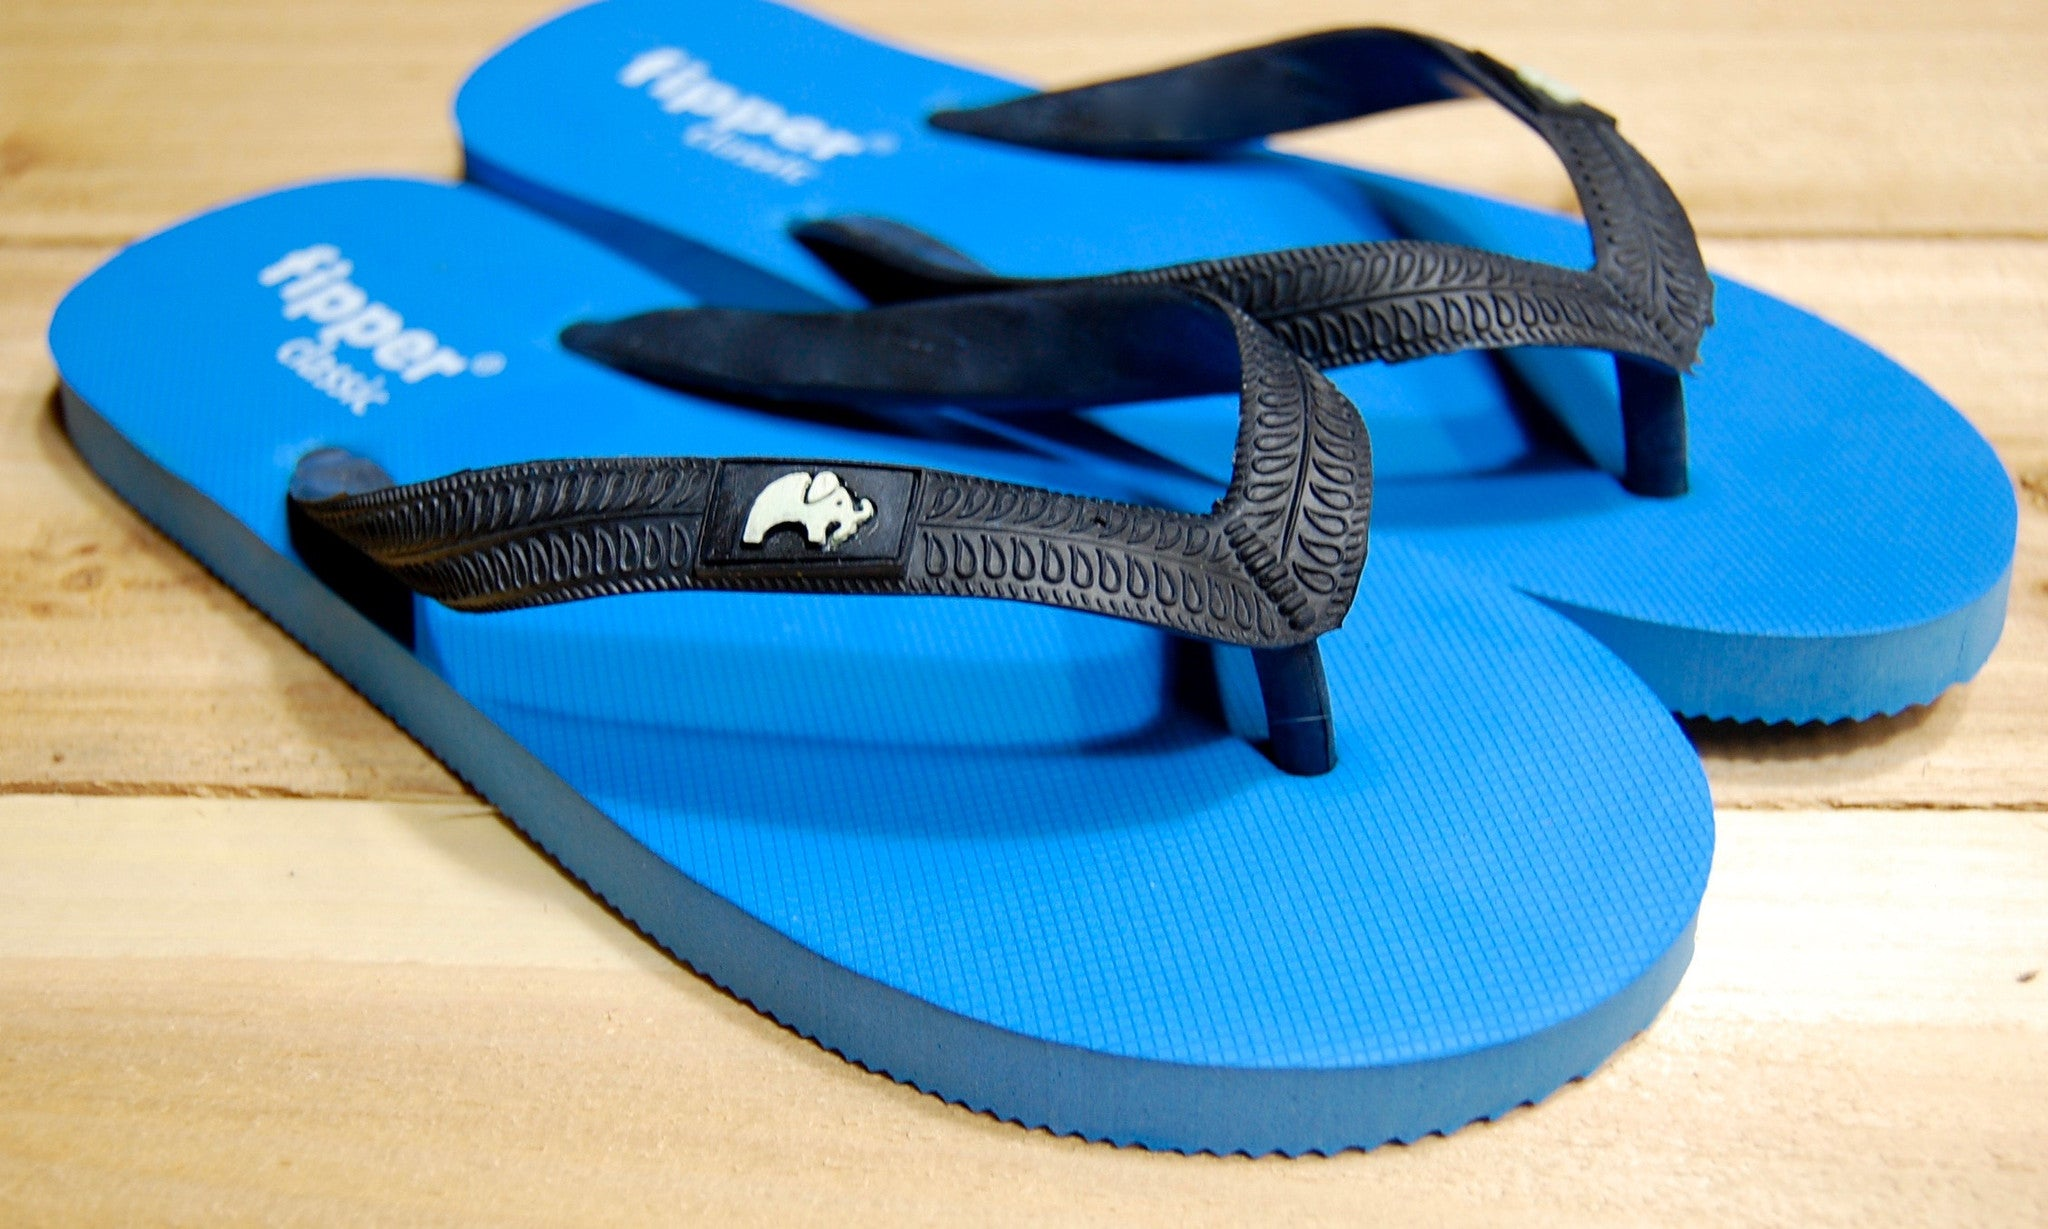 Blue Sole Black Strap Fipper Classic Comfortable Rubber Flip Flops for Men and Women Biodegradable Vegan Friendly